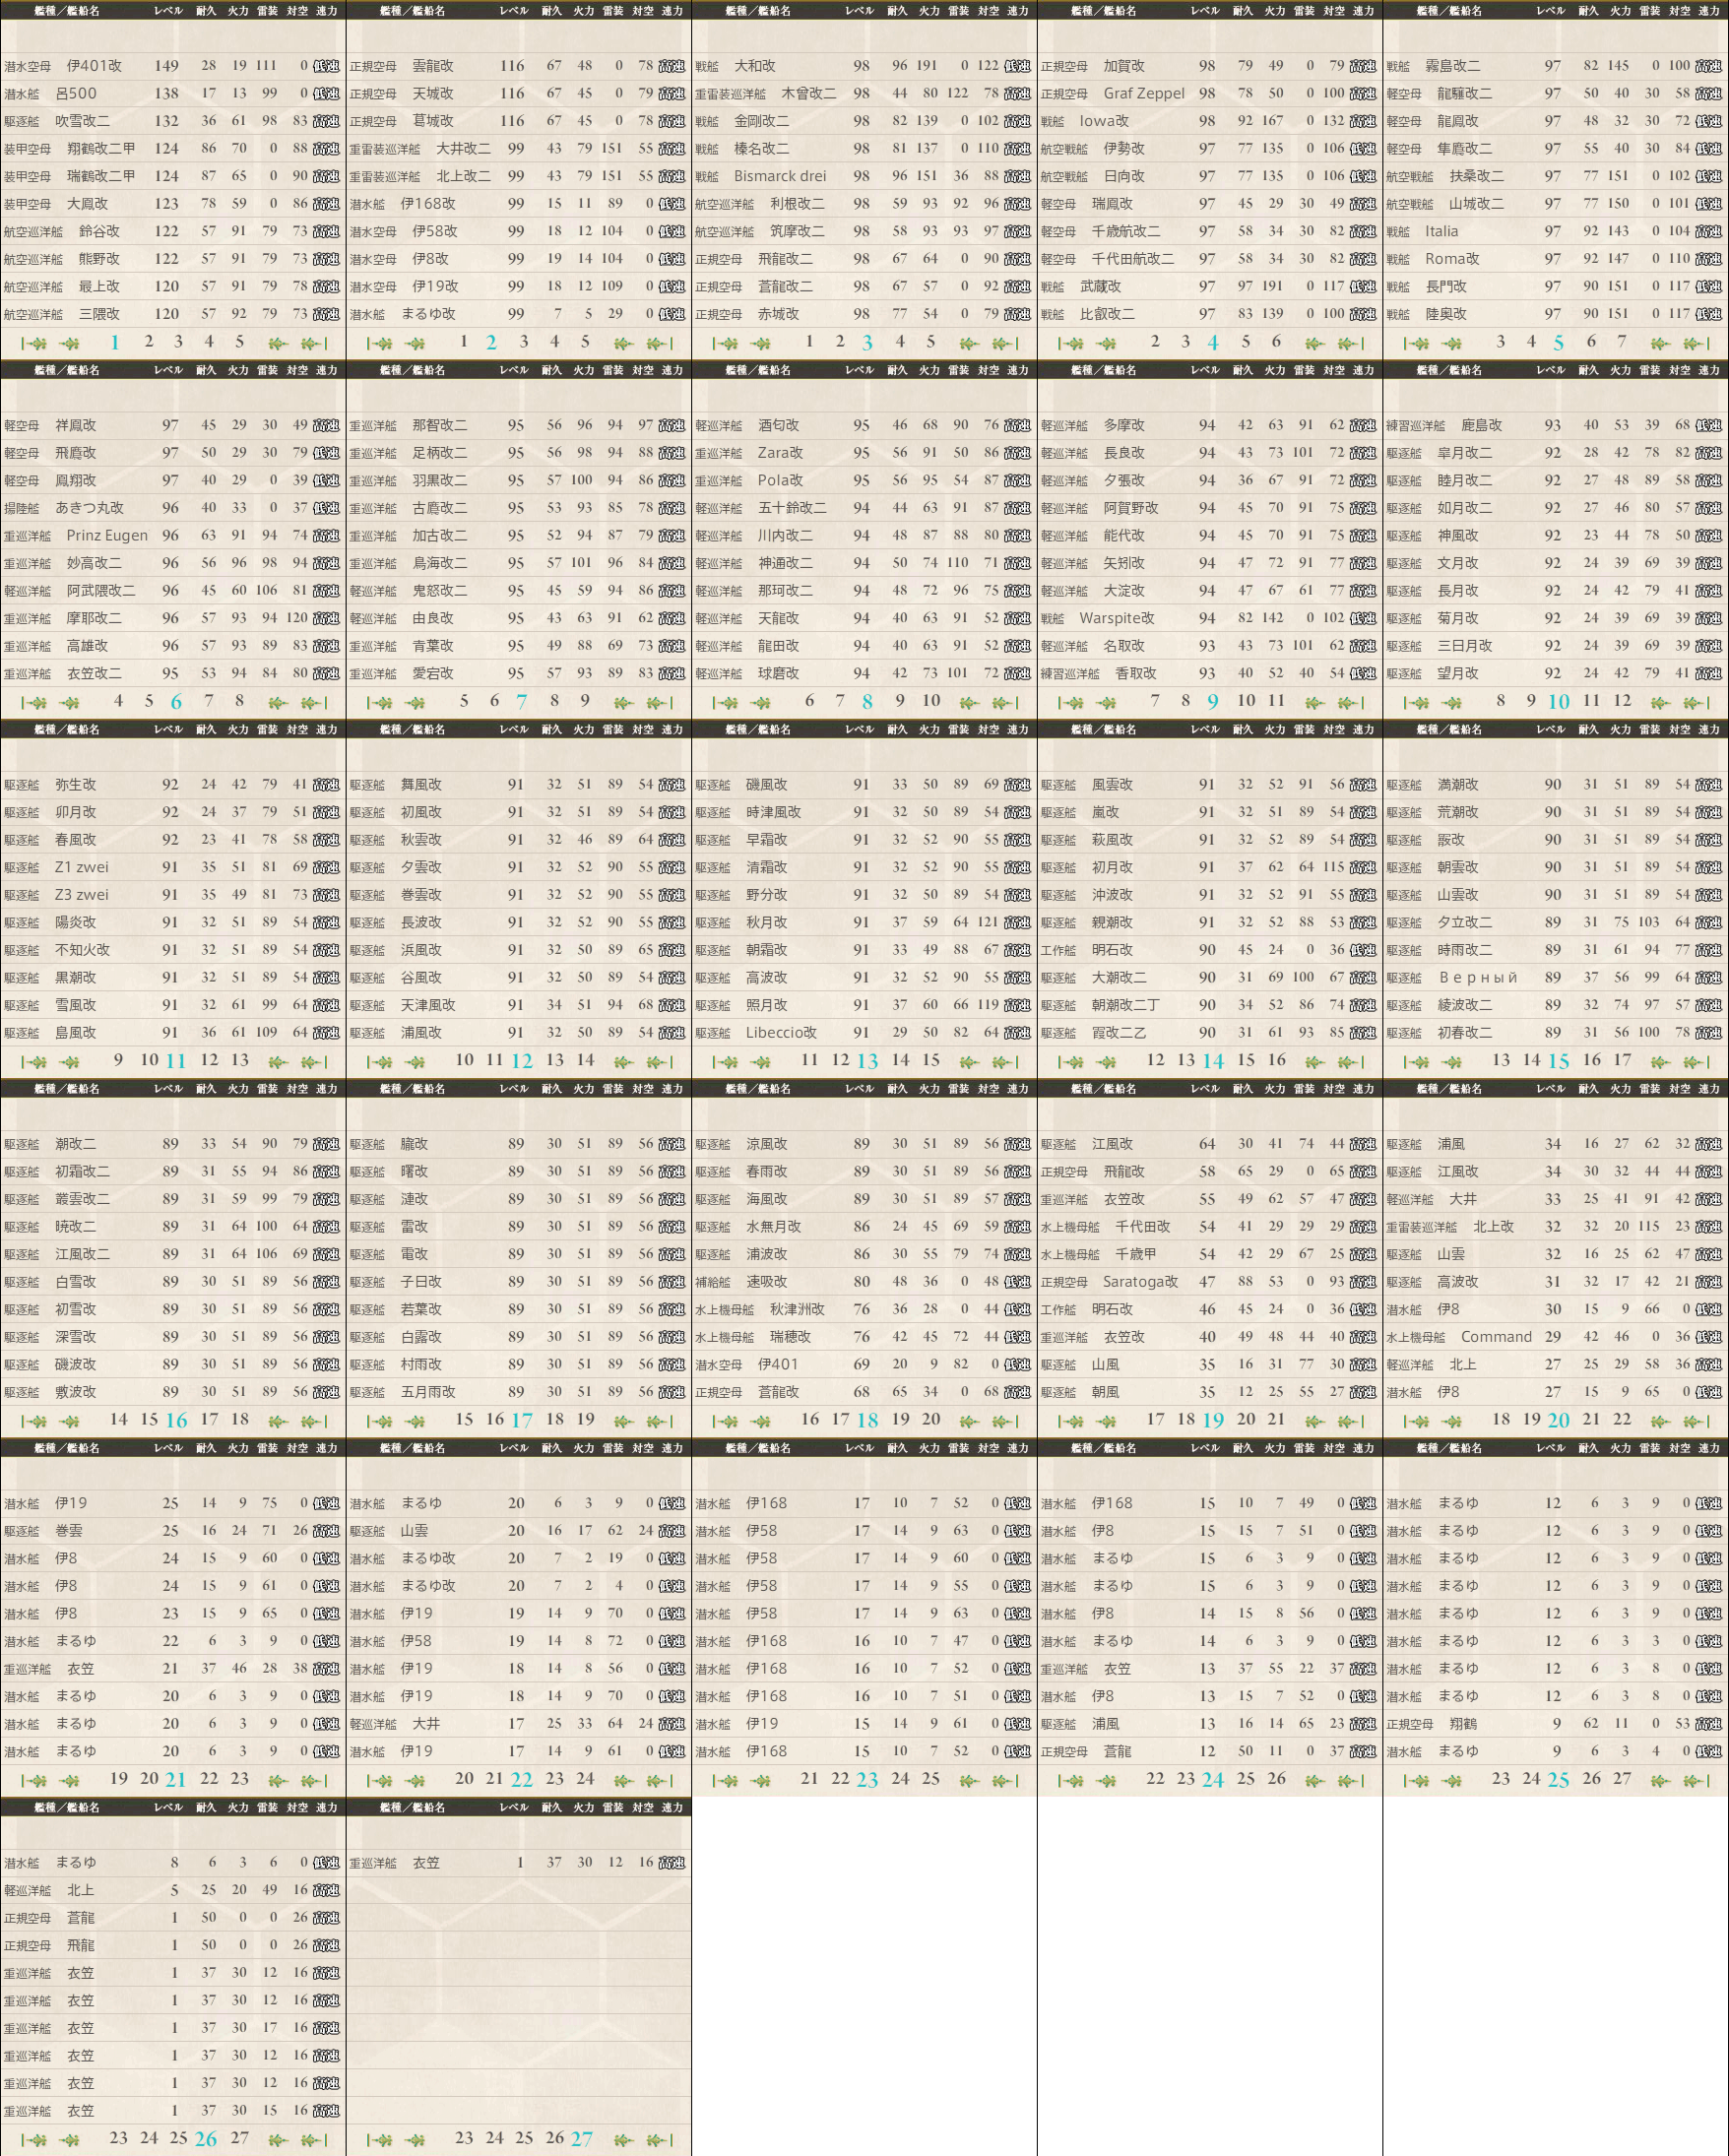 data.kancolle.levelsort.20161225.png